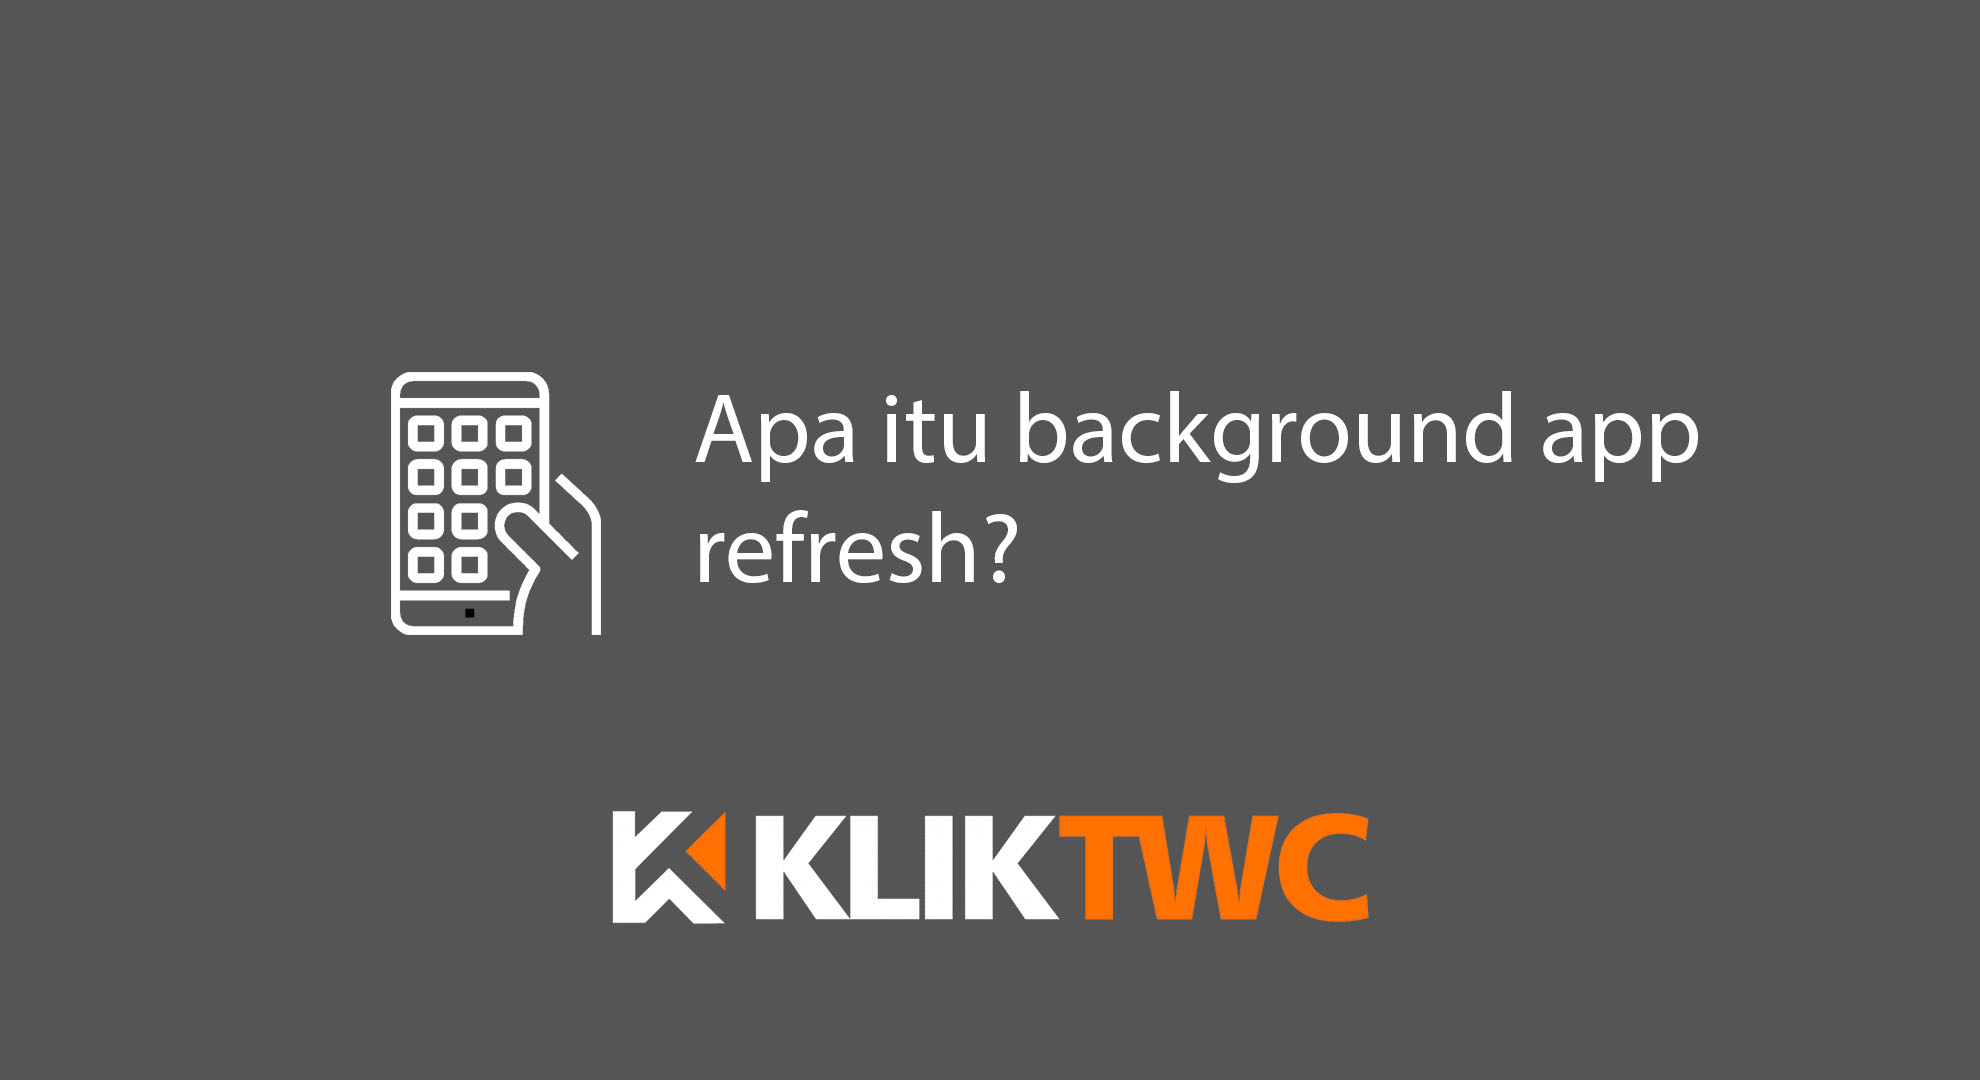 Apa itu background app refresh